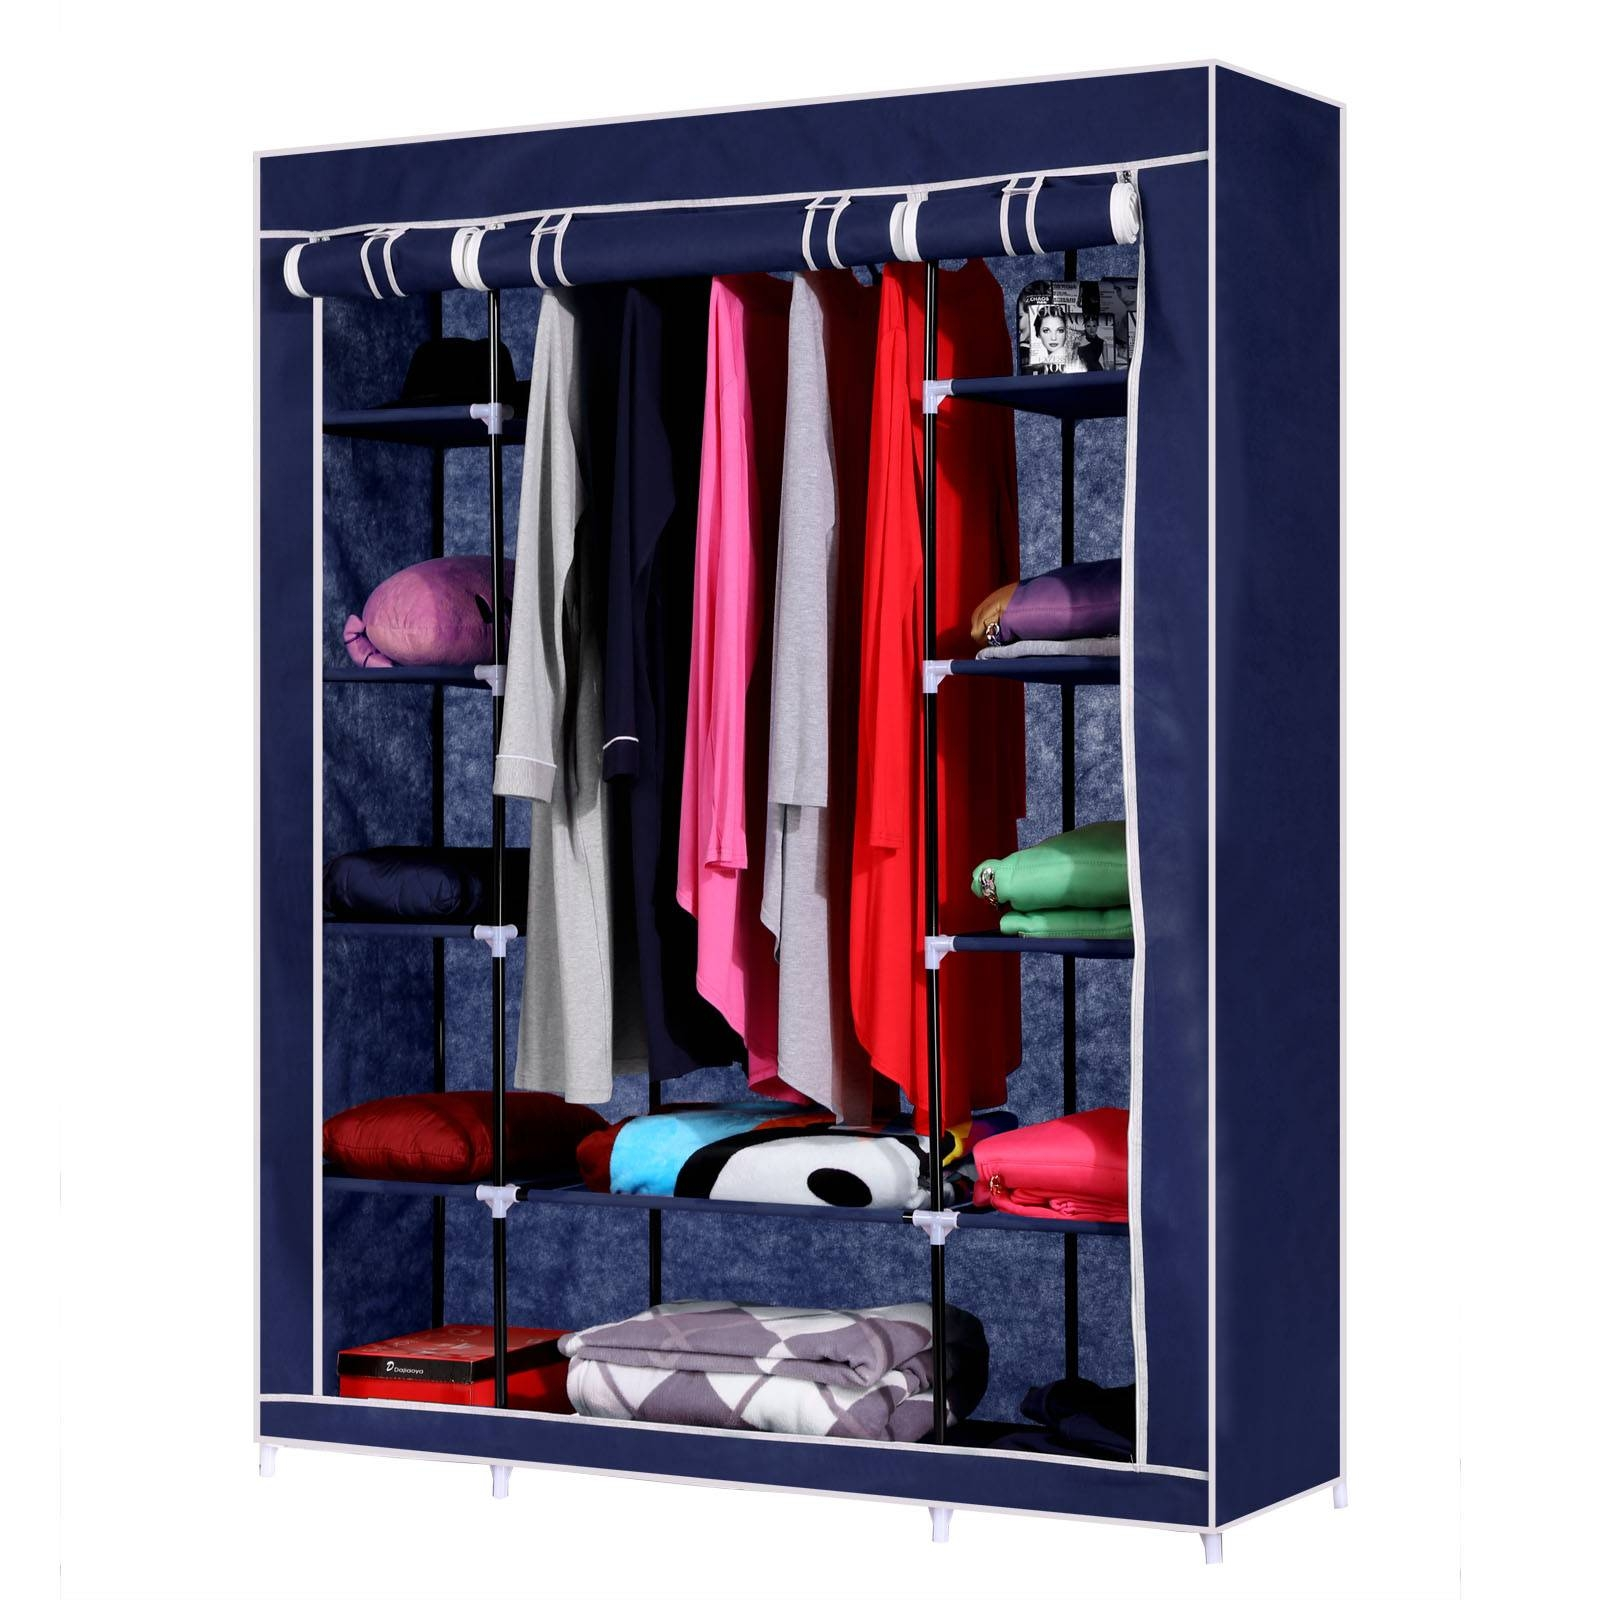 Online Get Cheap Folding Wardrobes -Aliexpress | Alibaba Group intended for Cheap Wardrobes (Image 13 of 15)